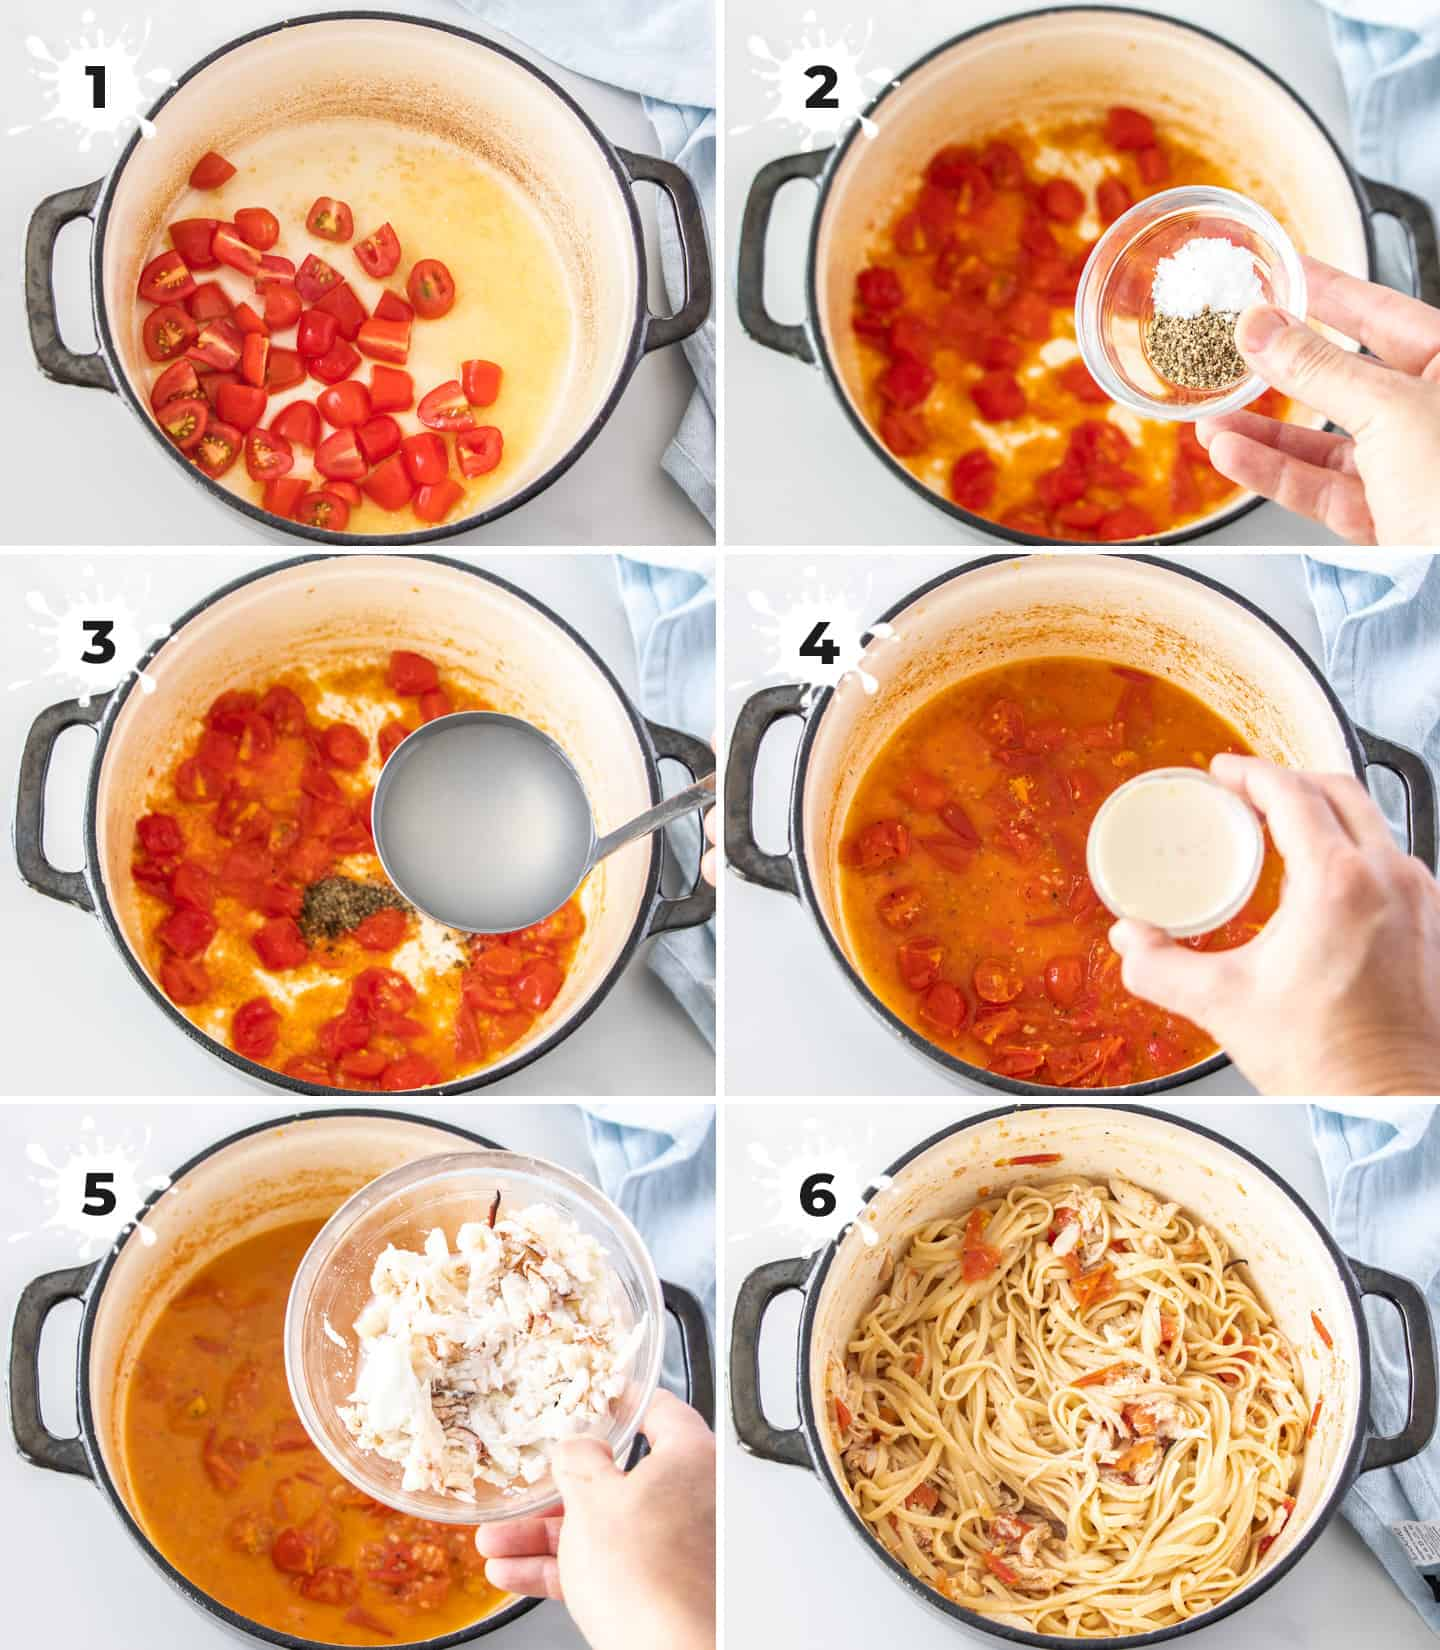 A collage of 6 images showing adding ingredients to a saucepan to make crab linguine.